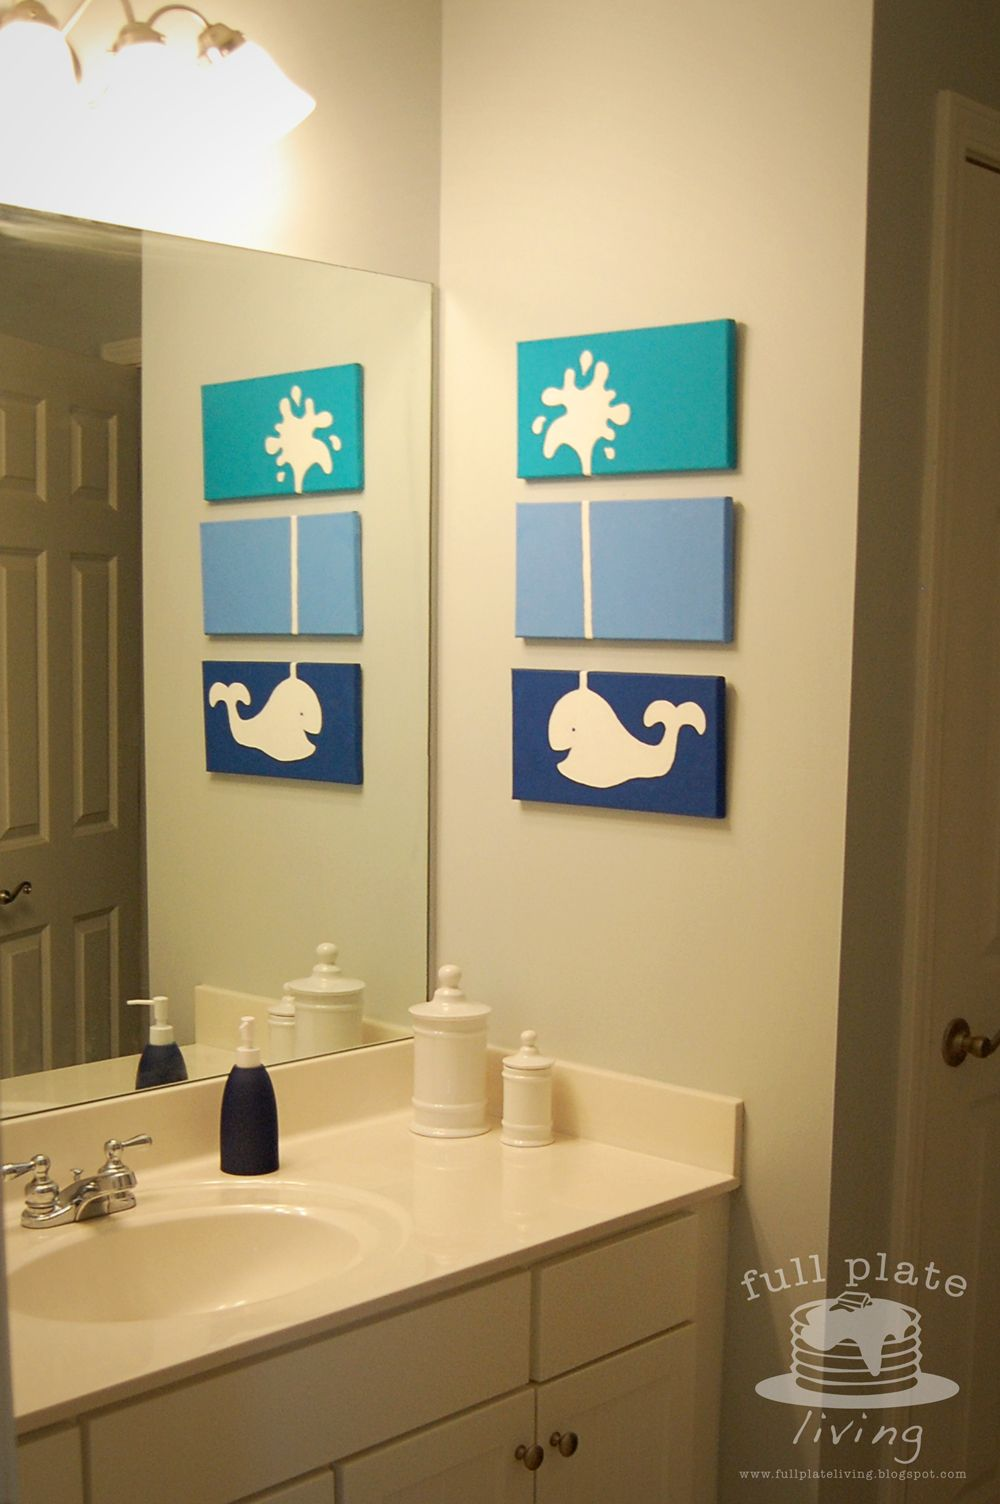 Whale of a Project | Full Plate Living | For the Home | Pinterest ...